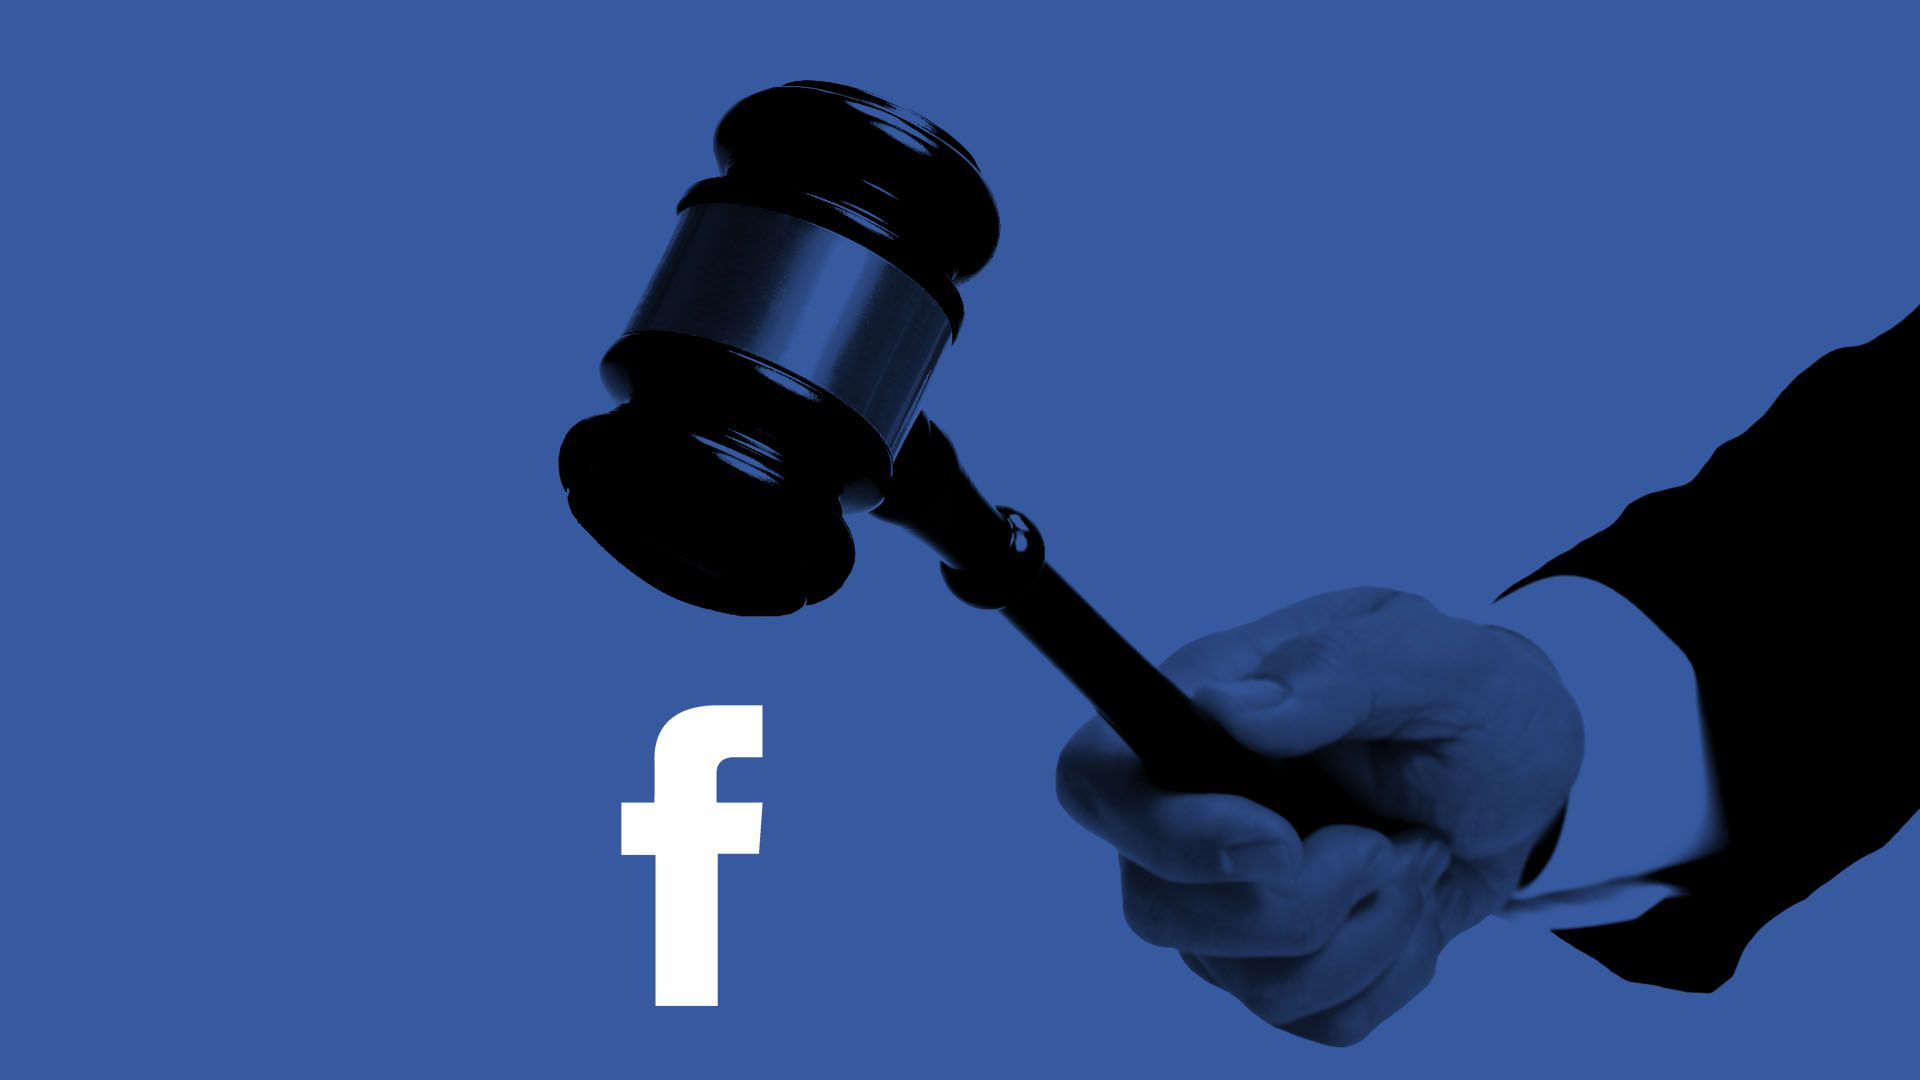 Facebook settles with FTC regulators over privacy